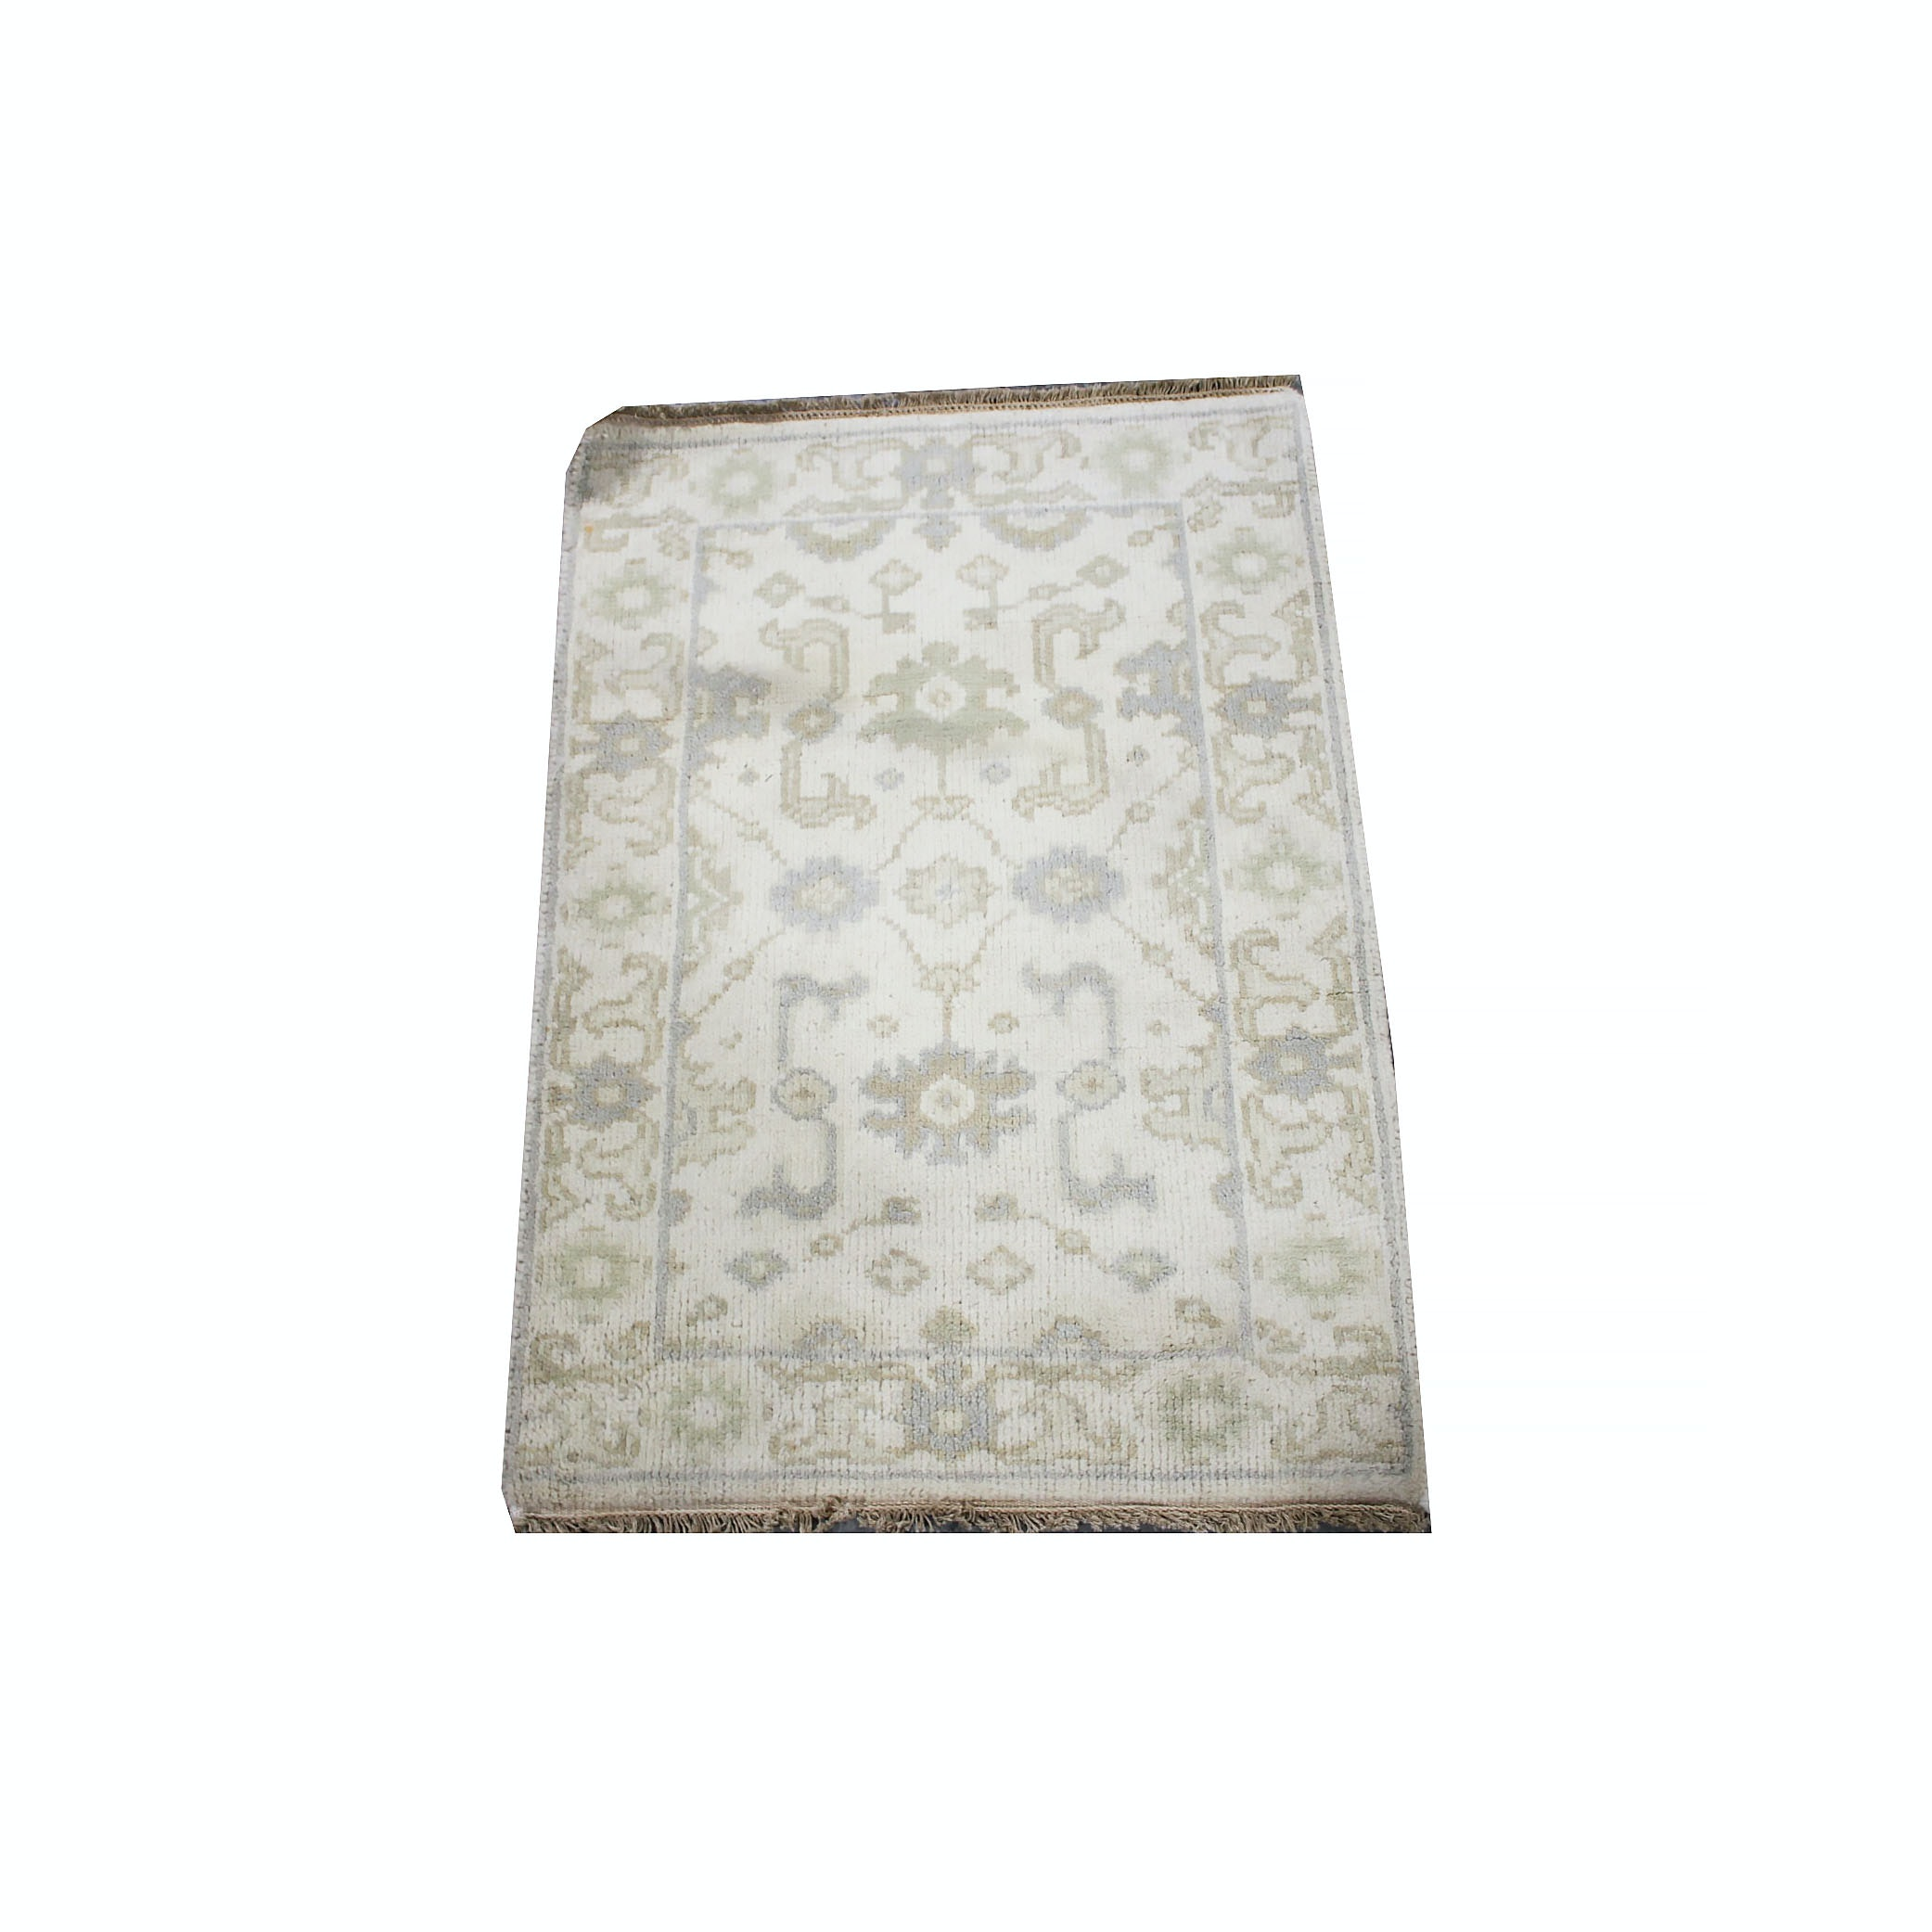 Vintage Hand-Knotted Turkish Oushak Wool Accent Rug